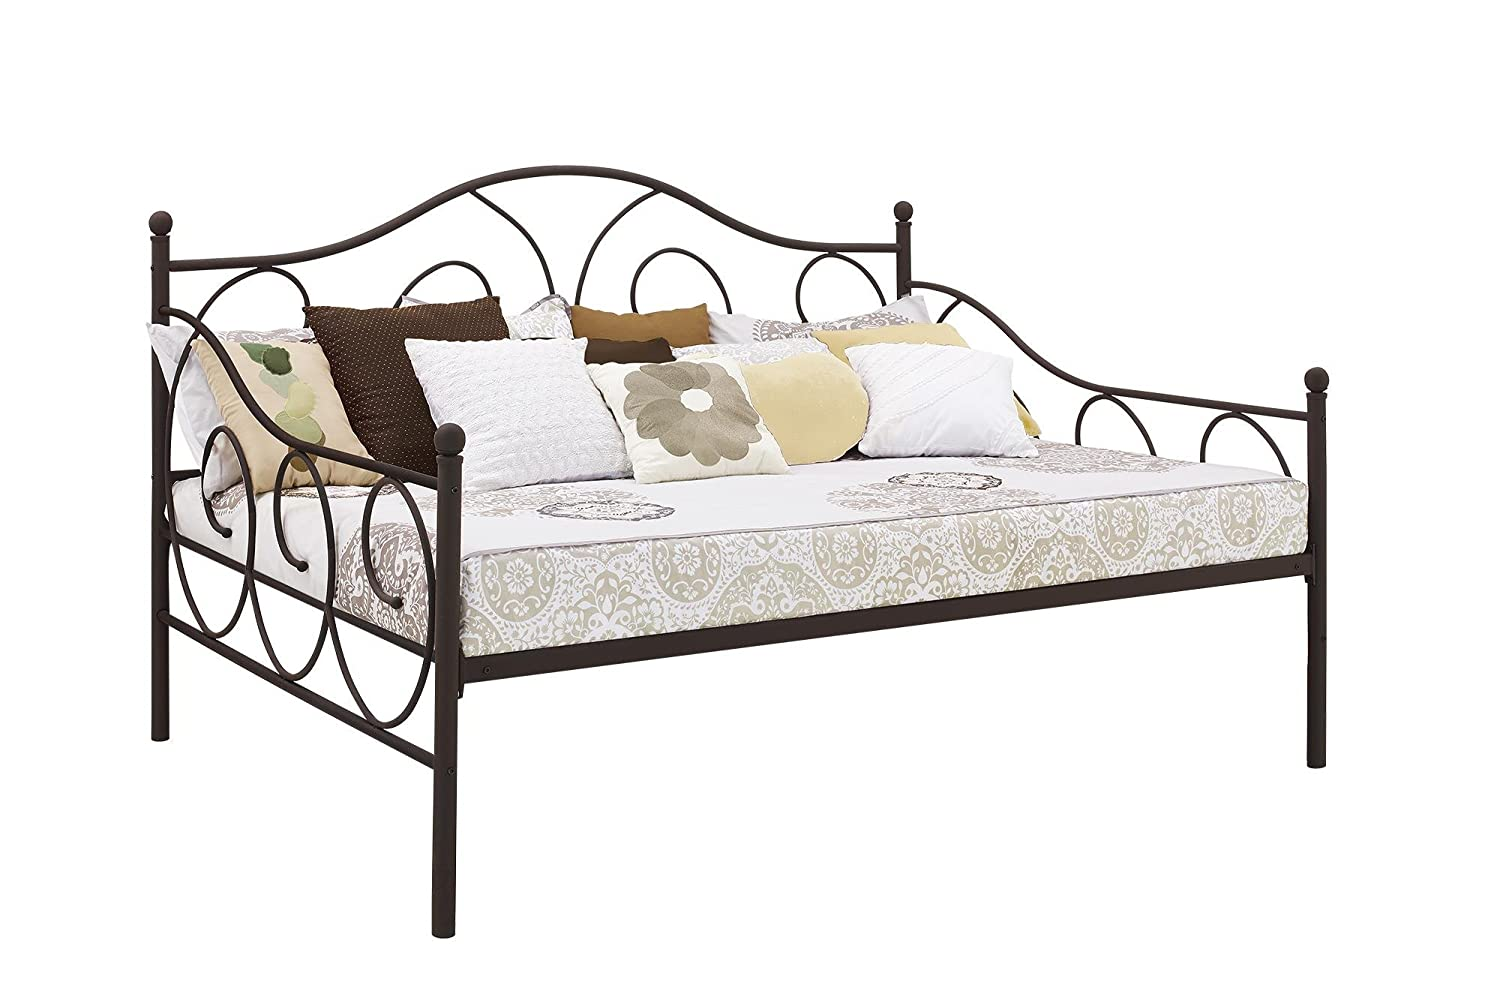 DHP Victoria Daybed, Full Size Metal Frame, Multi-functional Furniture, Bronze